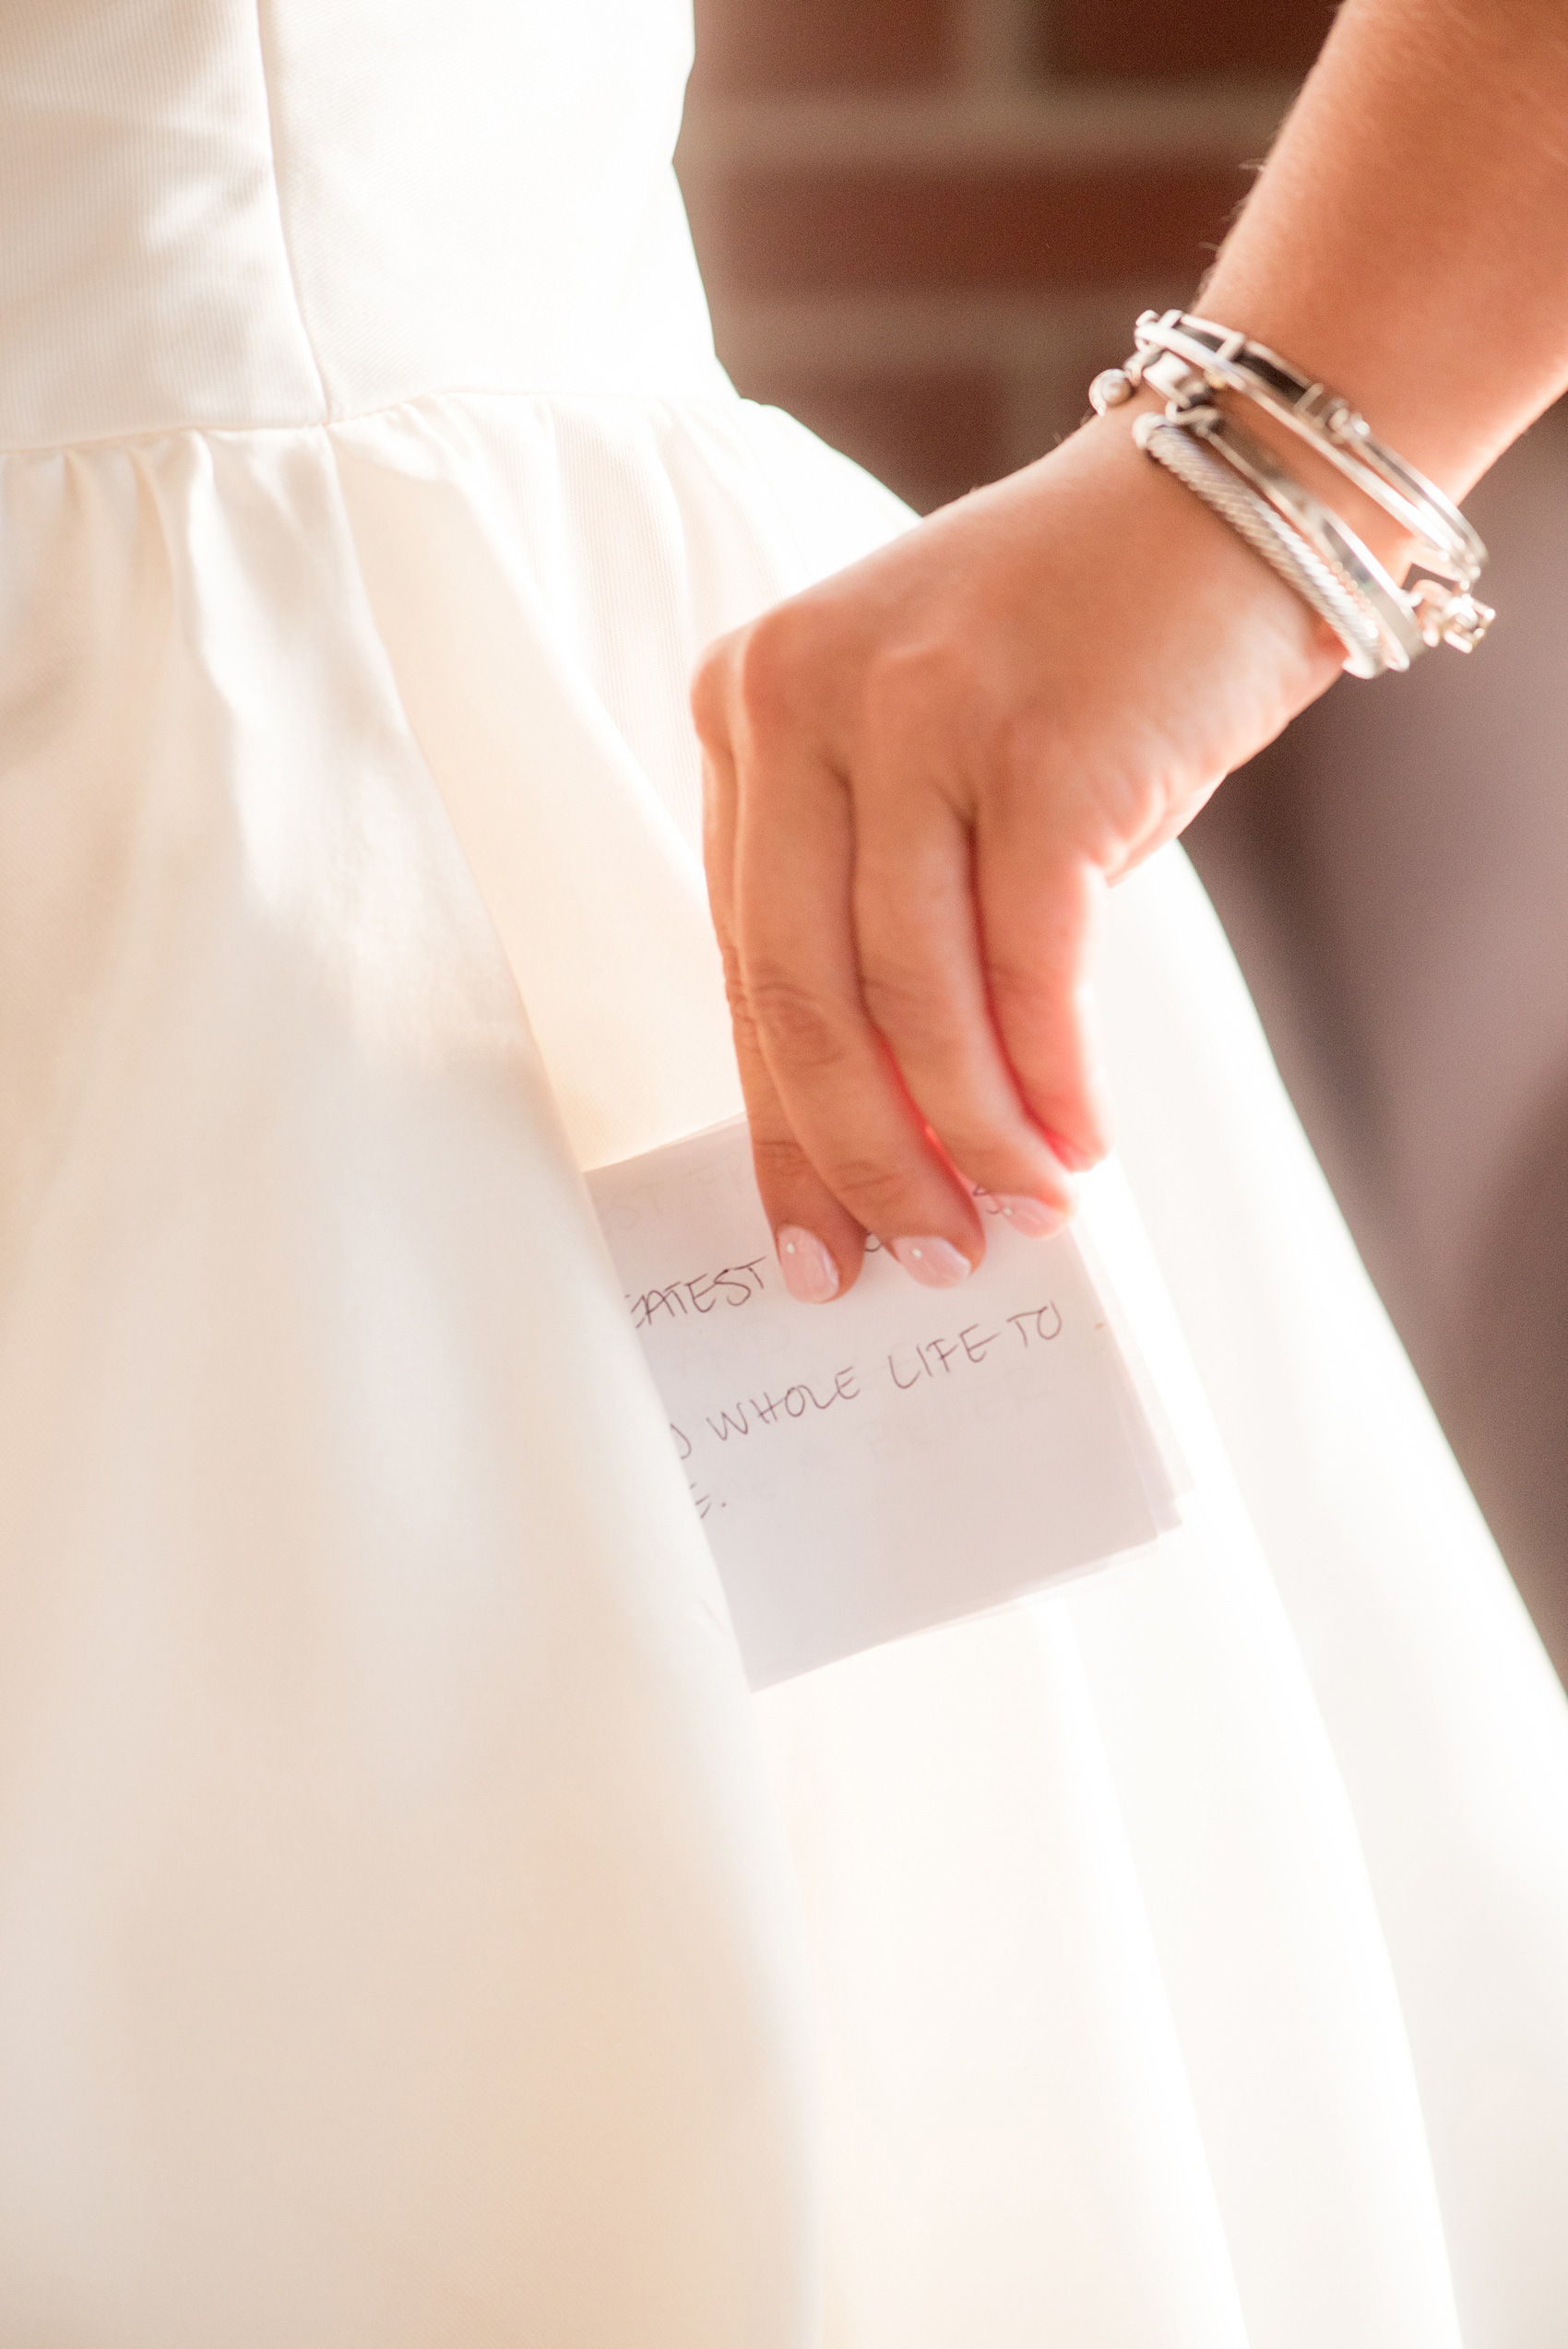 Mikkel Paige Photography photo of a wedding at The Rickhouse, Durham. A picture of the bride's vows being placed in her gown pocket.